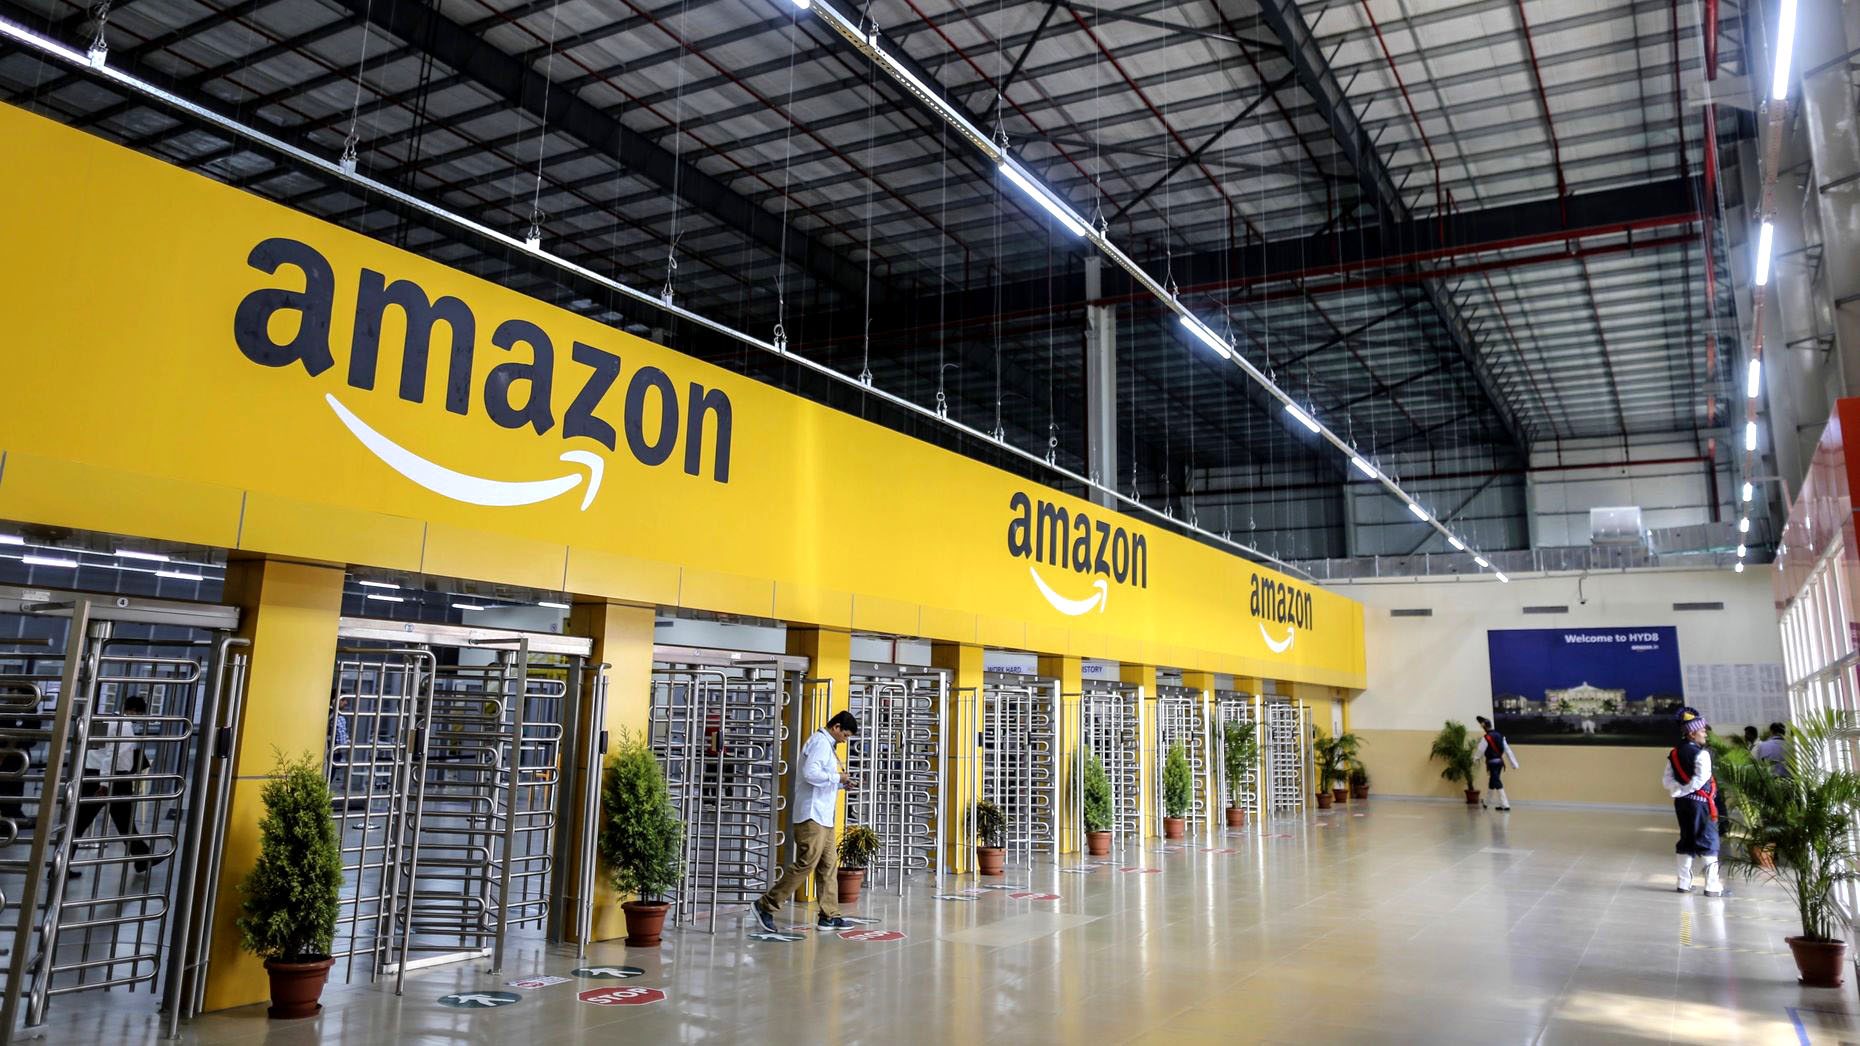 Amazon looks to hire for 1,100 positions in Nashville area